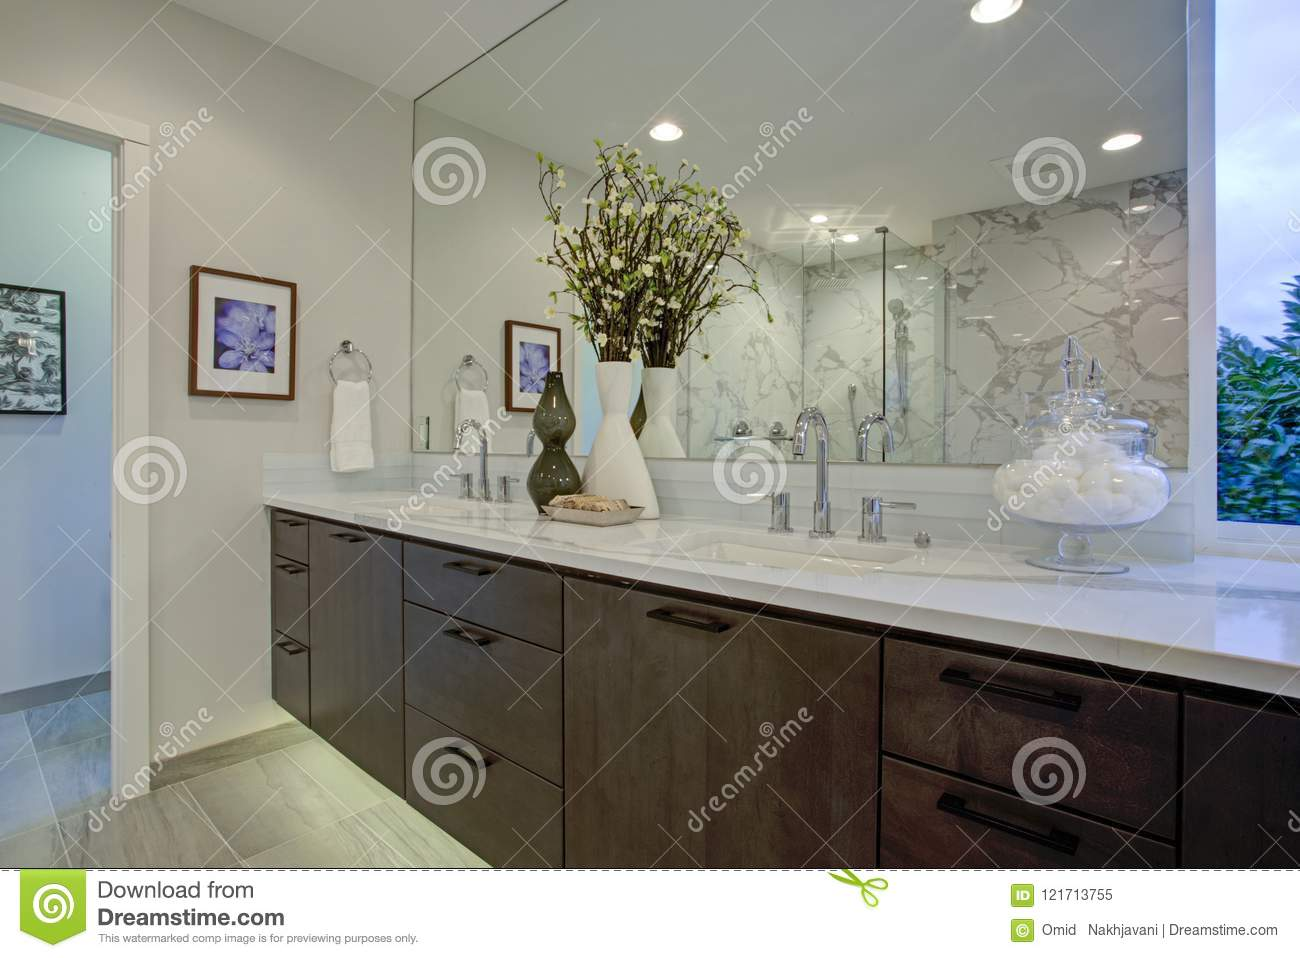 White And Gray Calcutta Marble Bathroom Design Stock Image Image Of Double Floor 121713755